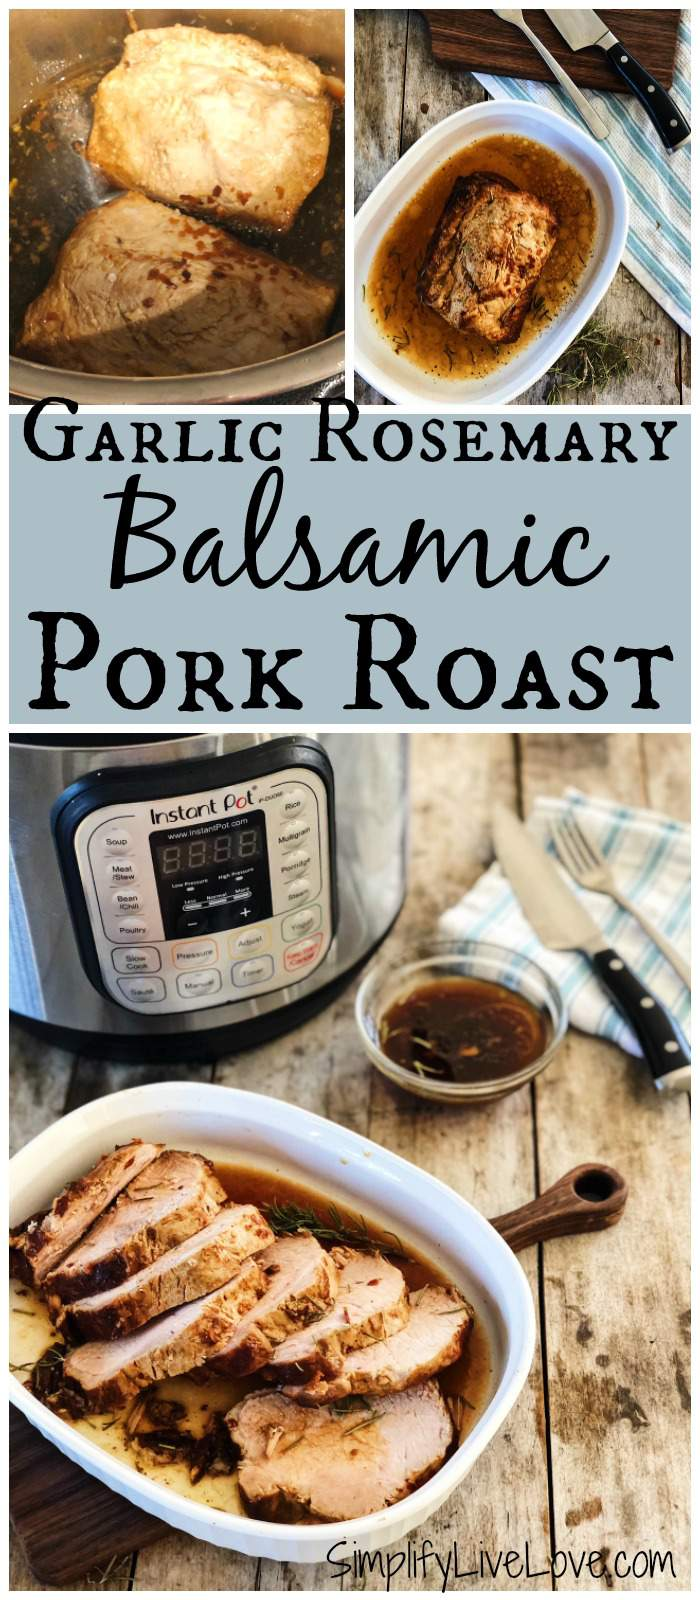 Made with balsamic vinegar and plenty of fresh garlic and rosemary, this instant pot pork roast is really tasty! Grab this easy pressure cooker pork roast recipe and add it to your next meal plan!